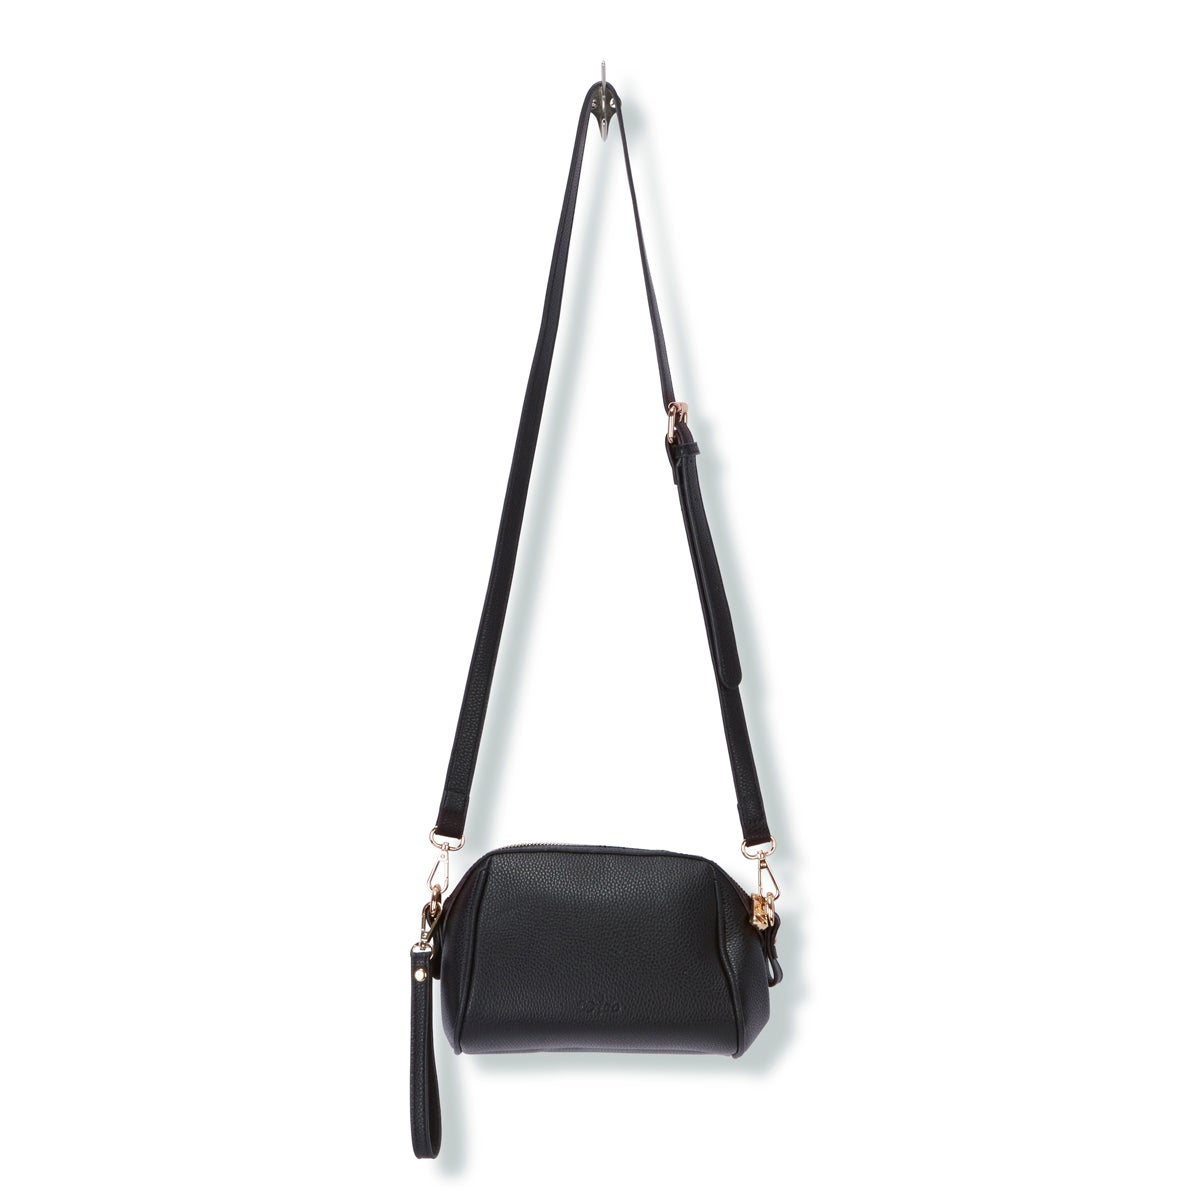 Lds The Bucket black cross body bag